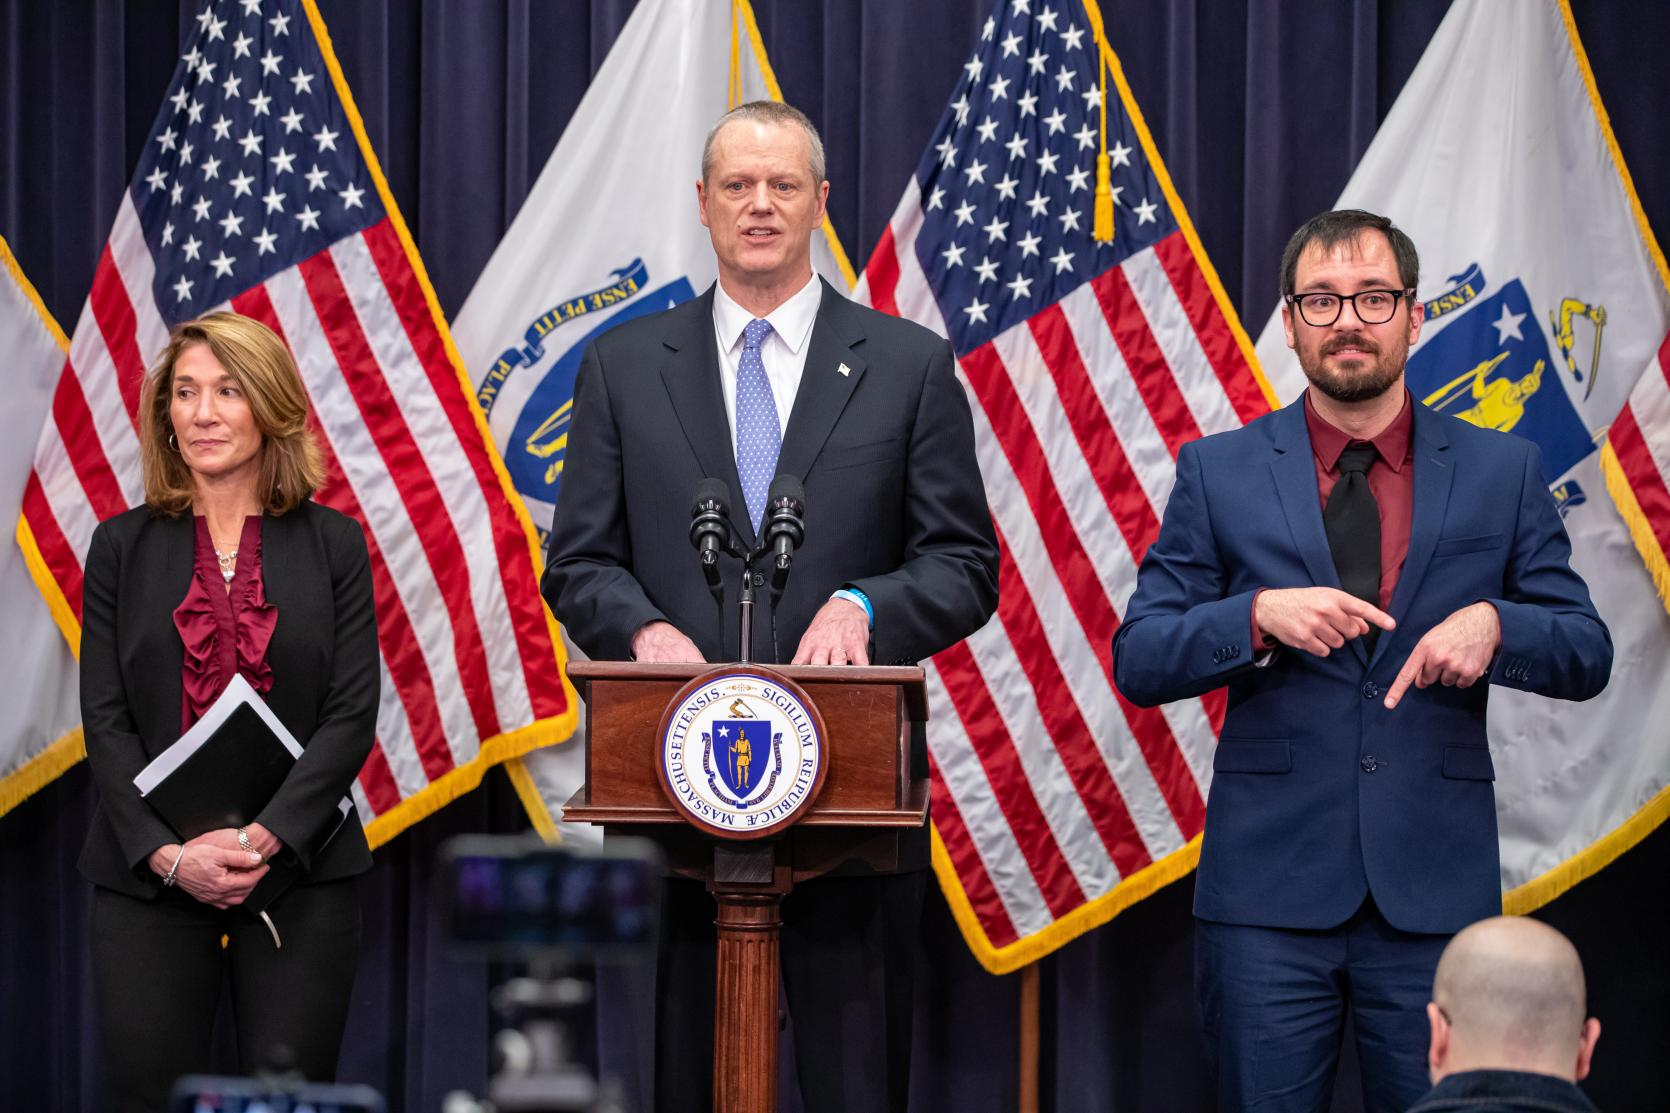 Baker-Polito Administration Announces Emergency Actions to Address COVID-19